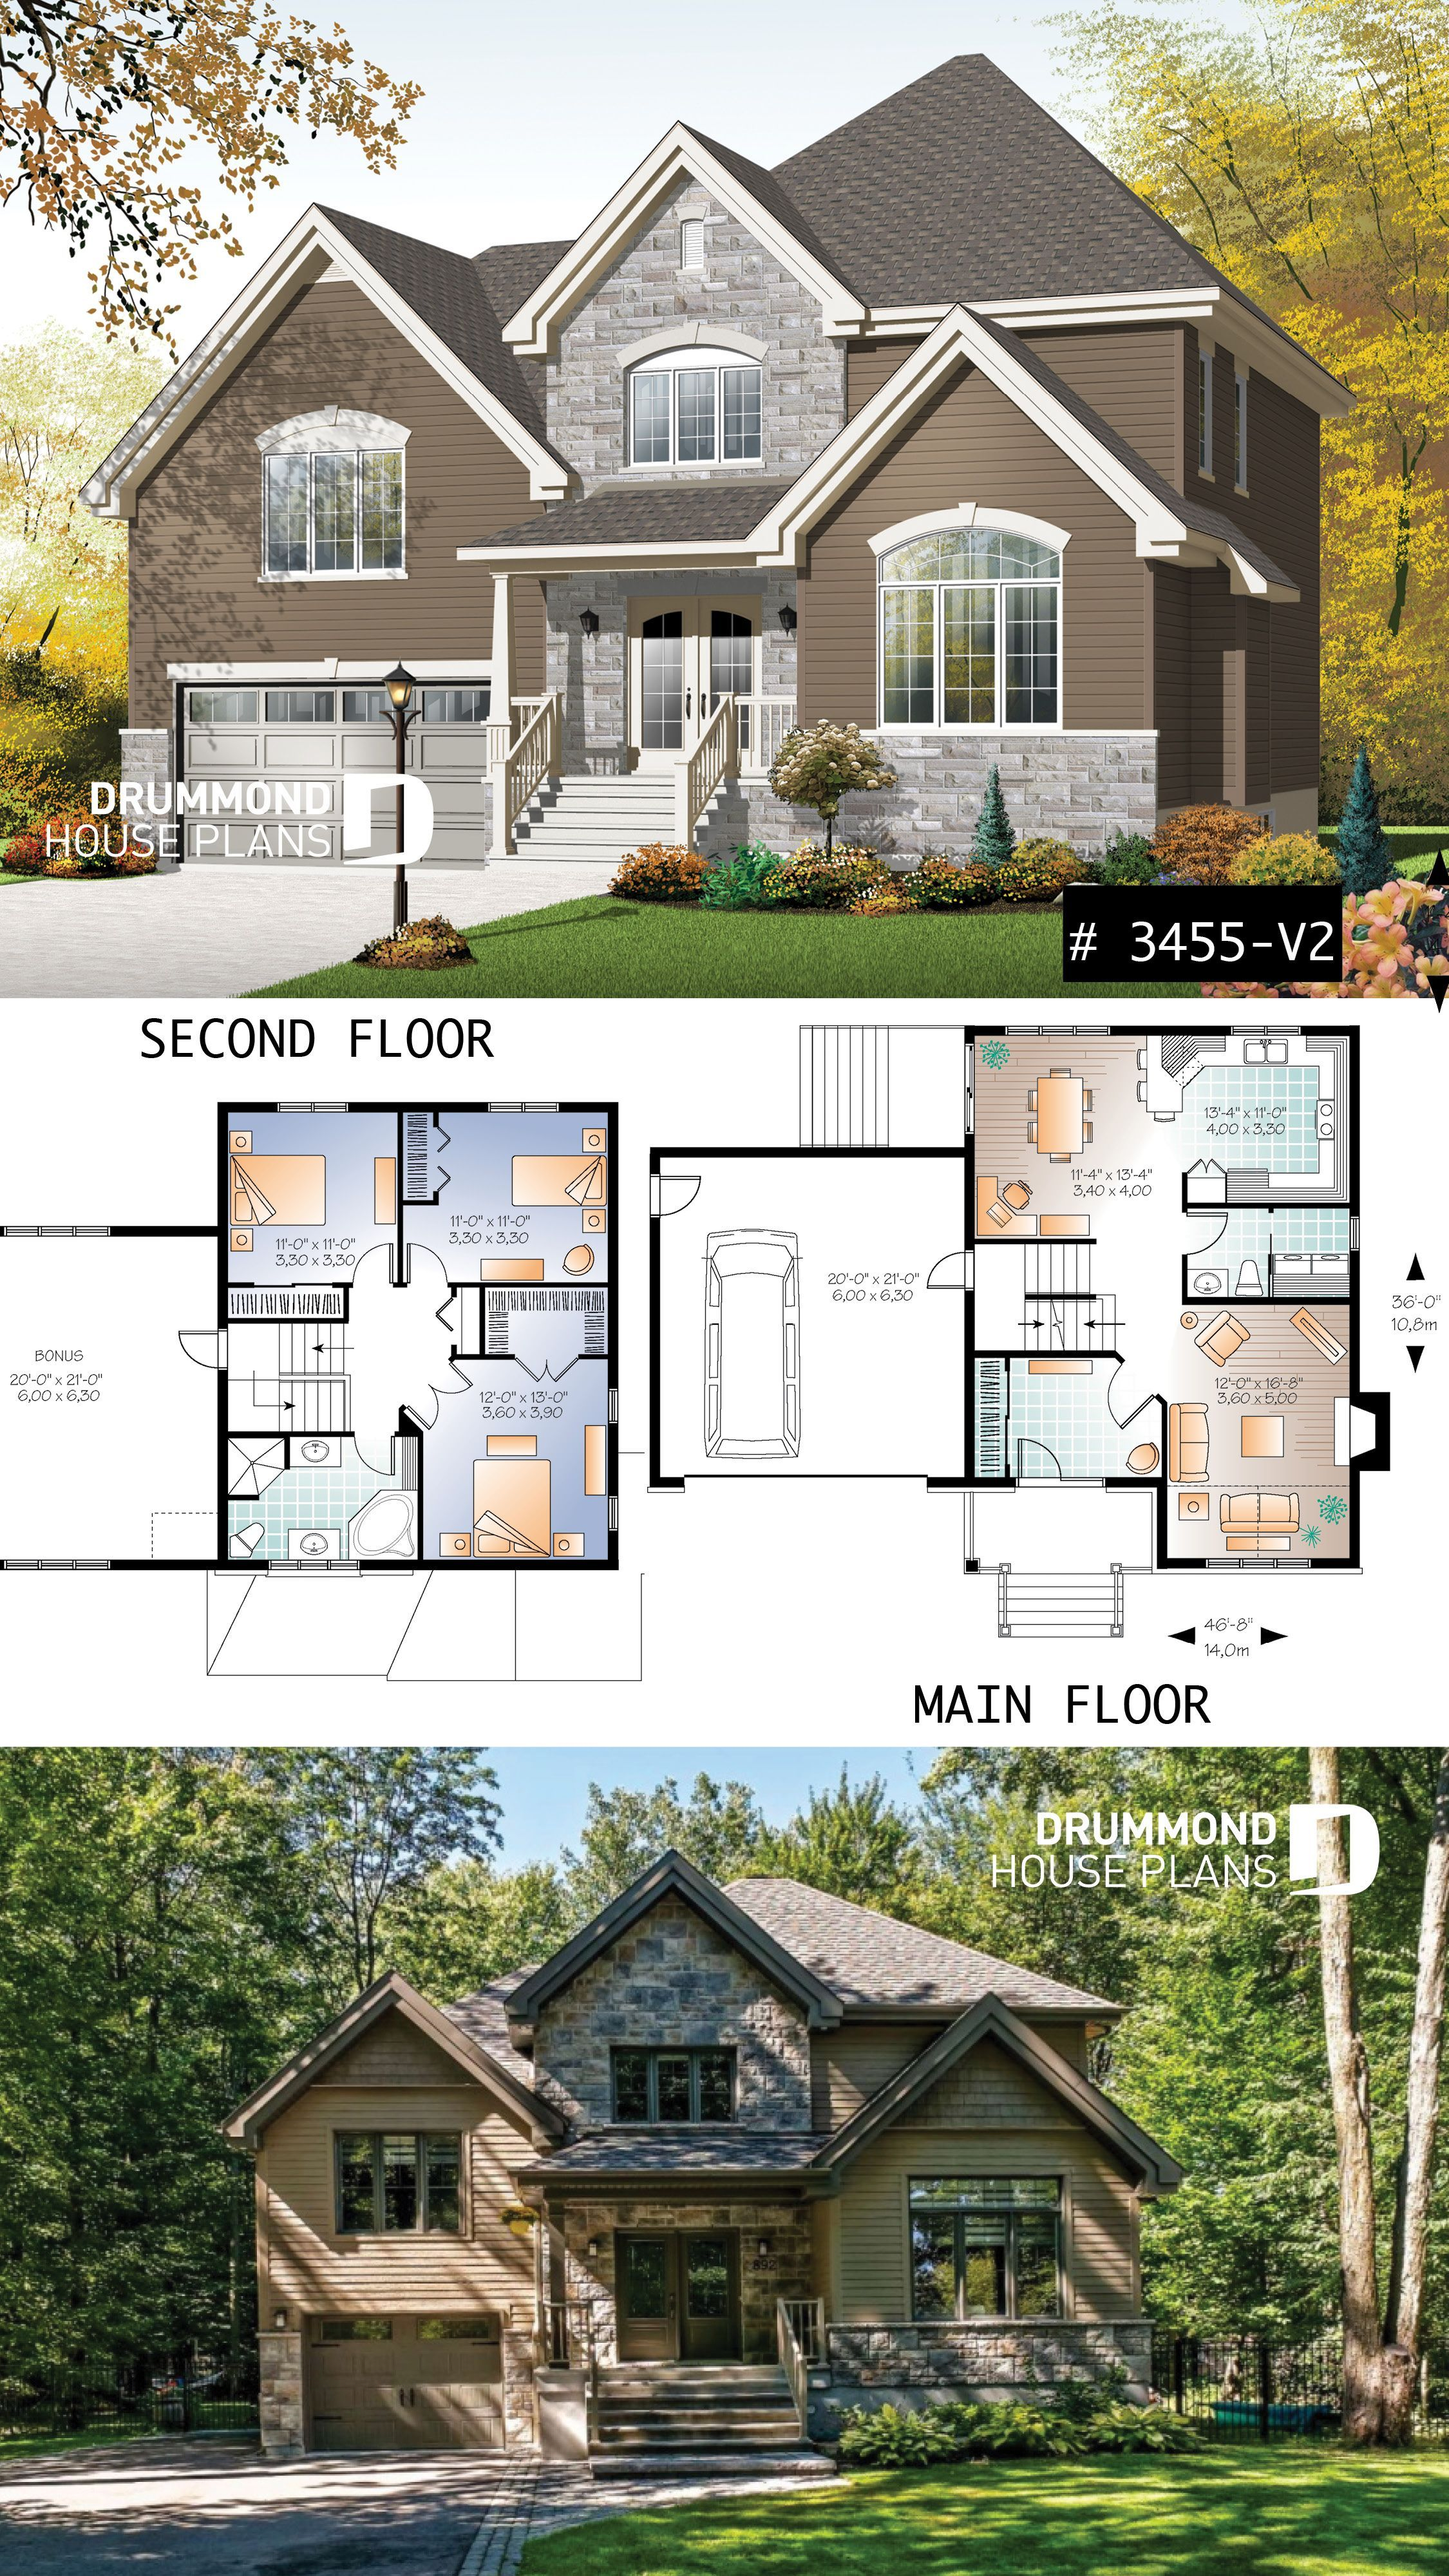 Modern Rustic House Plan With Large Bonus Space Above 2 Car Garage Large Family Rustic House Plans Family House Plans House Plans